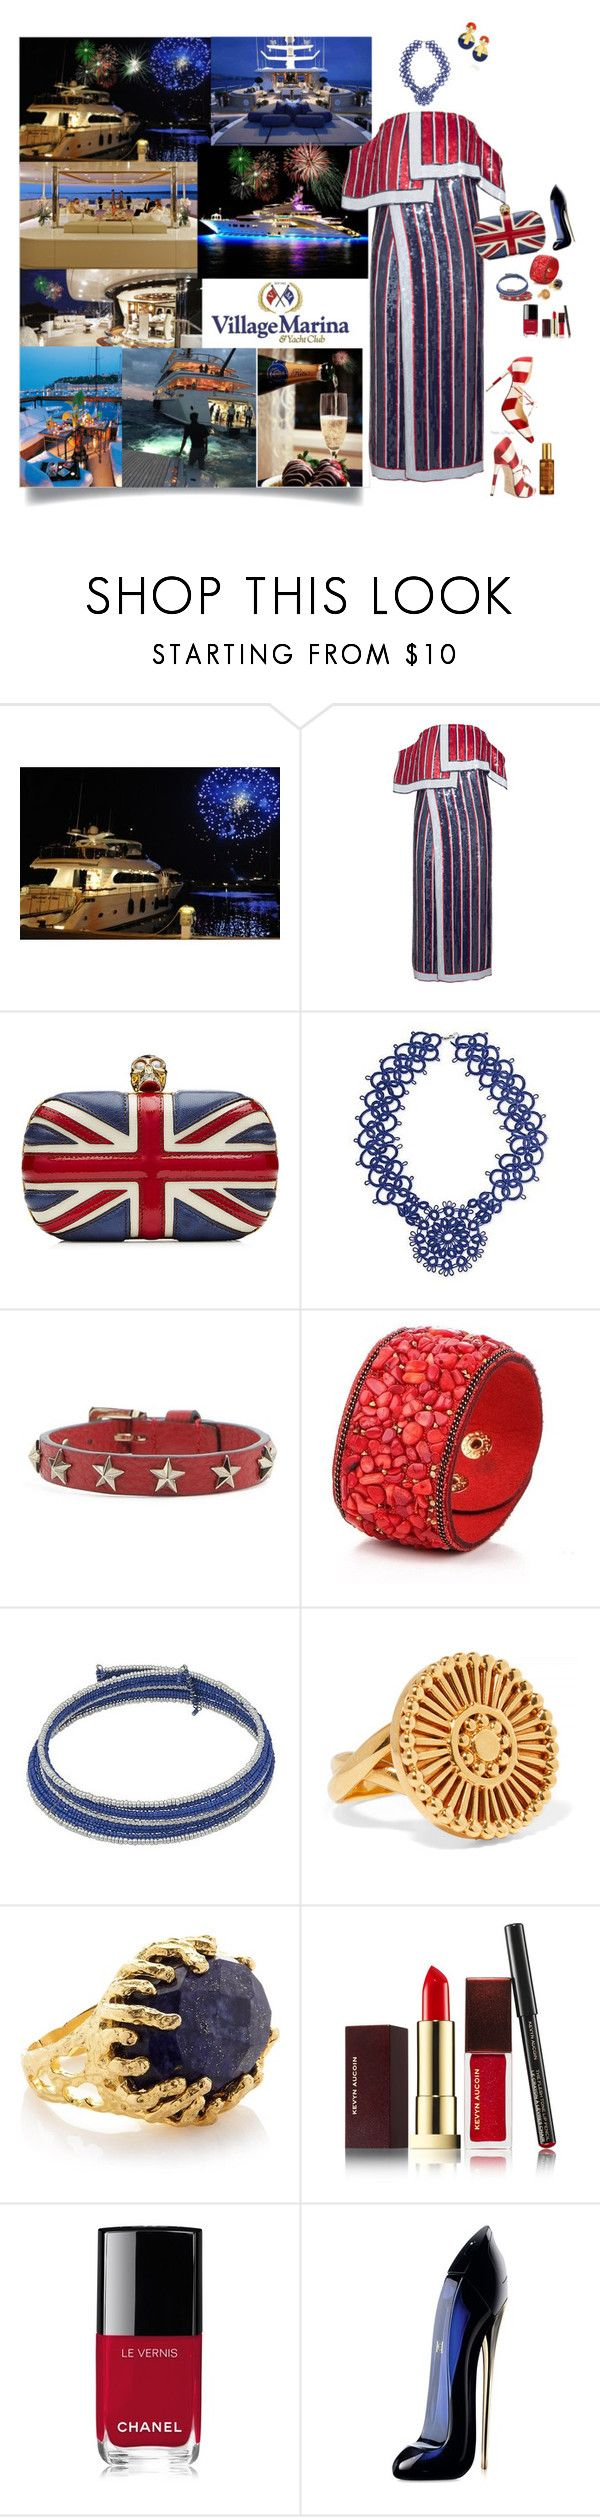 """""""Red White and Blue"""" by deborah-518 ❤ liked on Polyvore featuring Monse, Dolce&Gabbana, Alexander McQueen, NOVICA, RED Valentino, Chloé, Ottoman Hands, Kevyn Aucoin, Chanel and Carolina Herrera"""